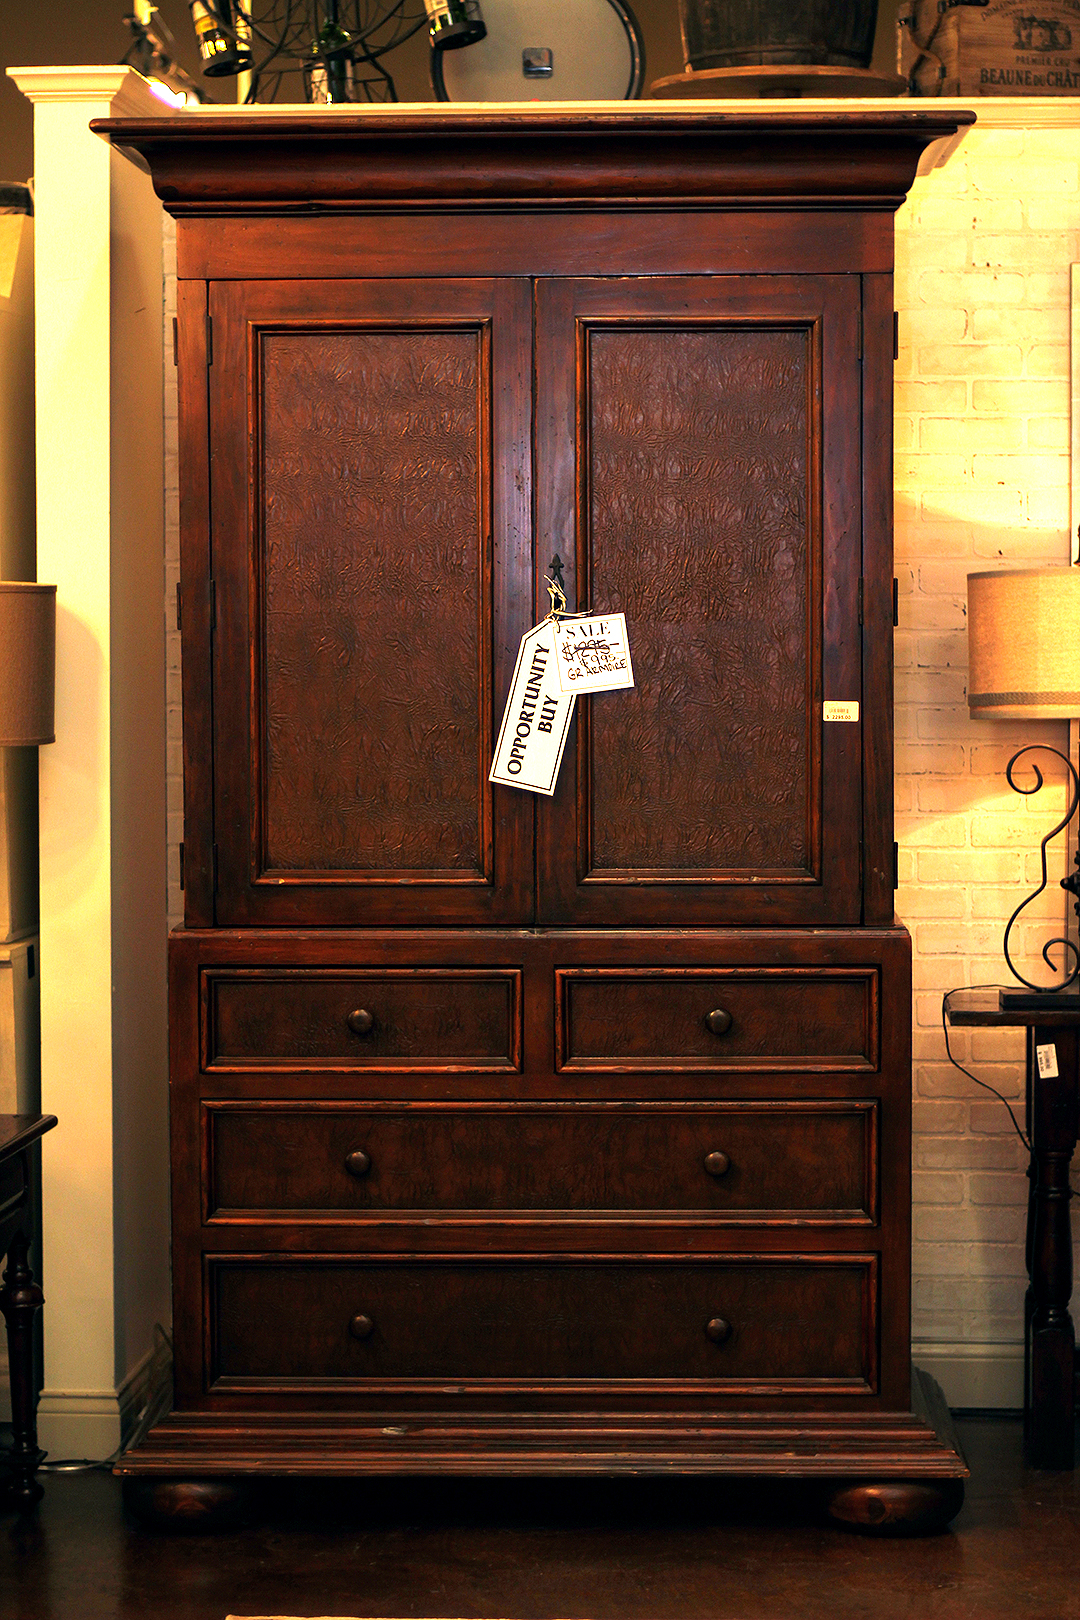 Antique-looking Armoire